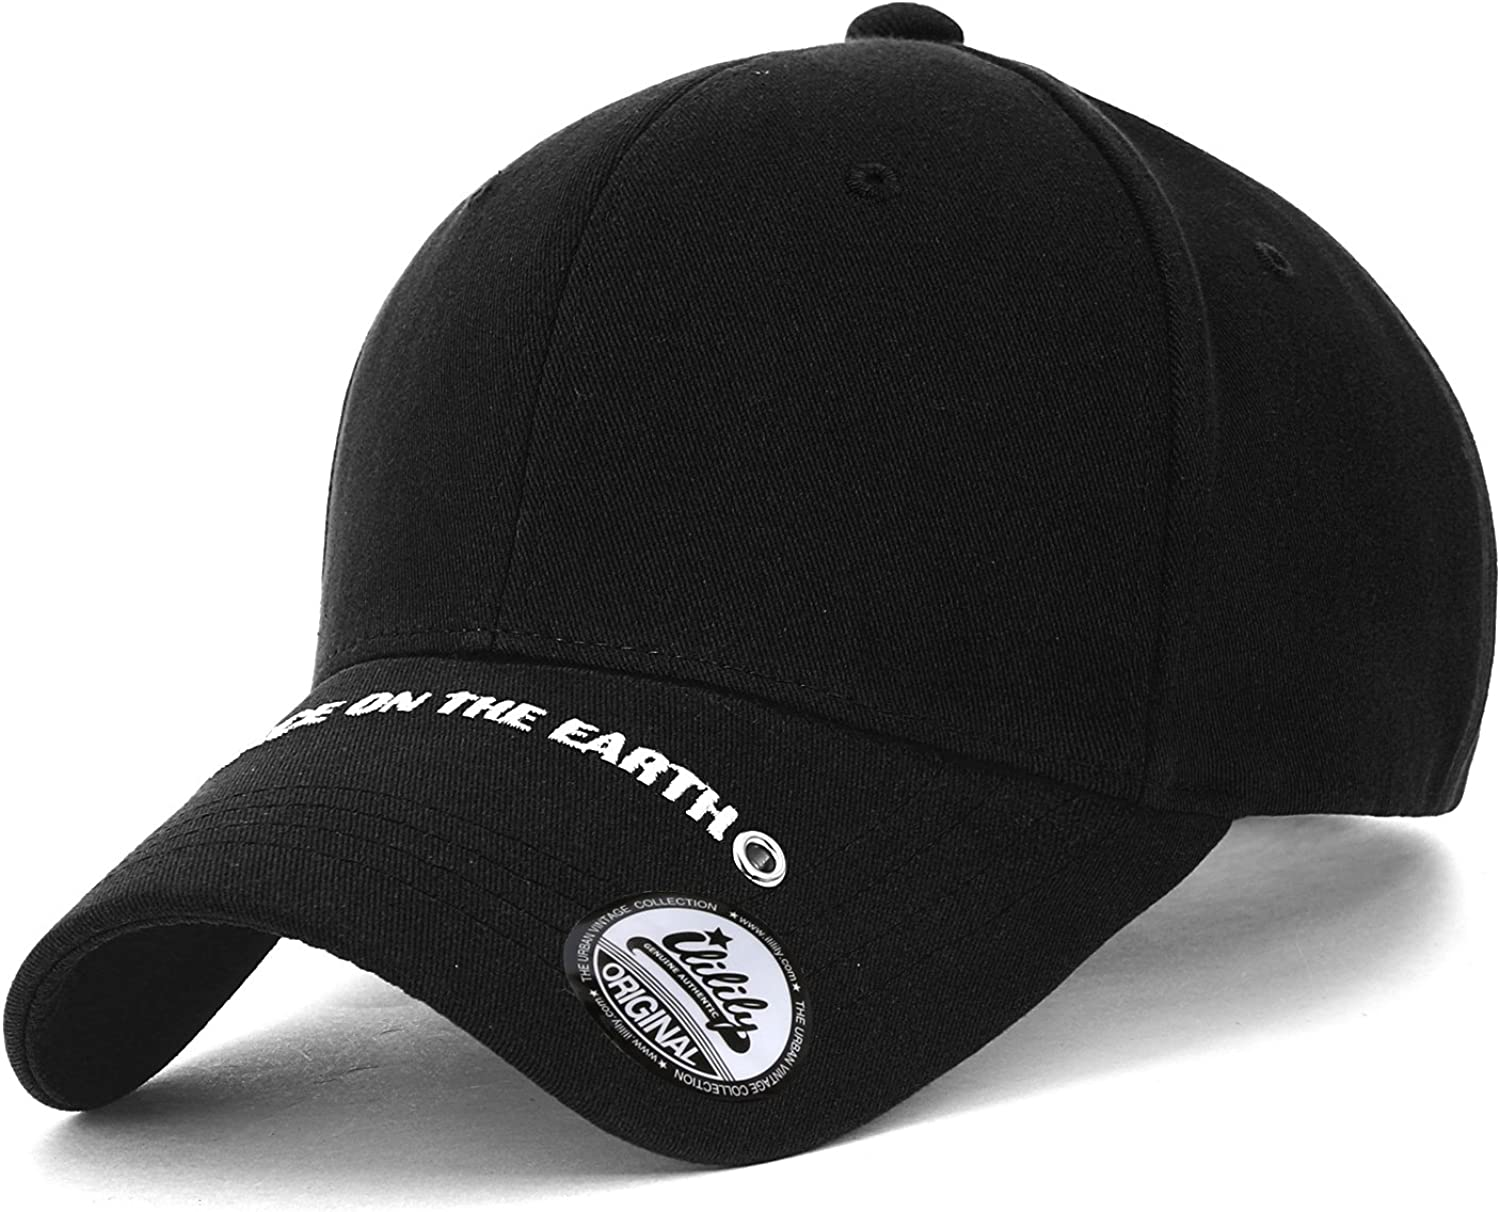 ililily Embroidered Patch Cotton Casual Baseball Cap Adjustable Trucker Hat